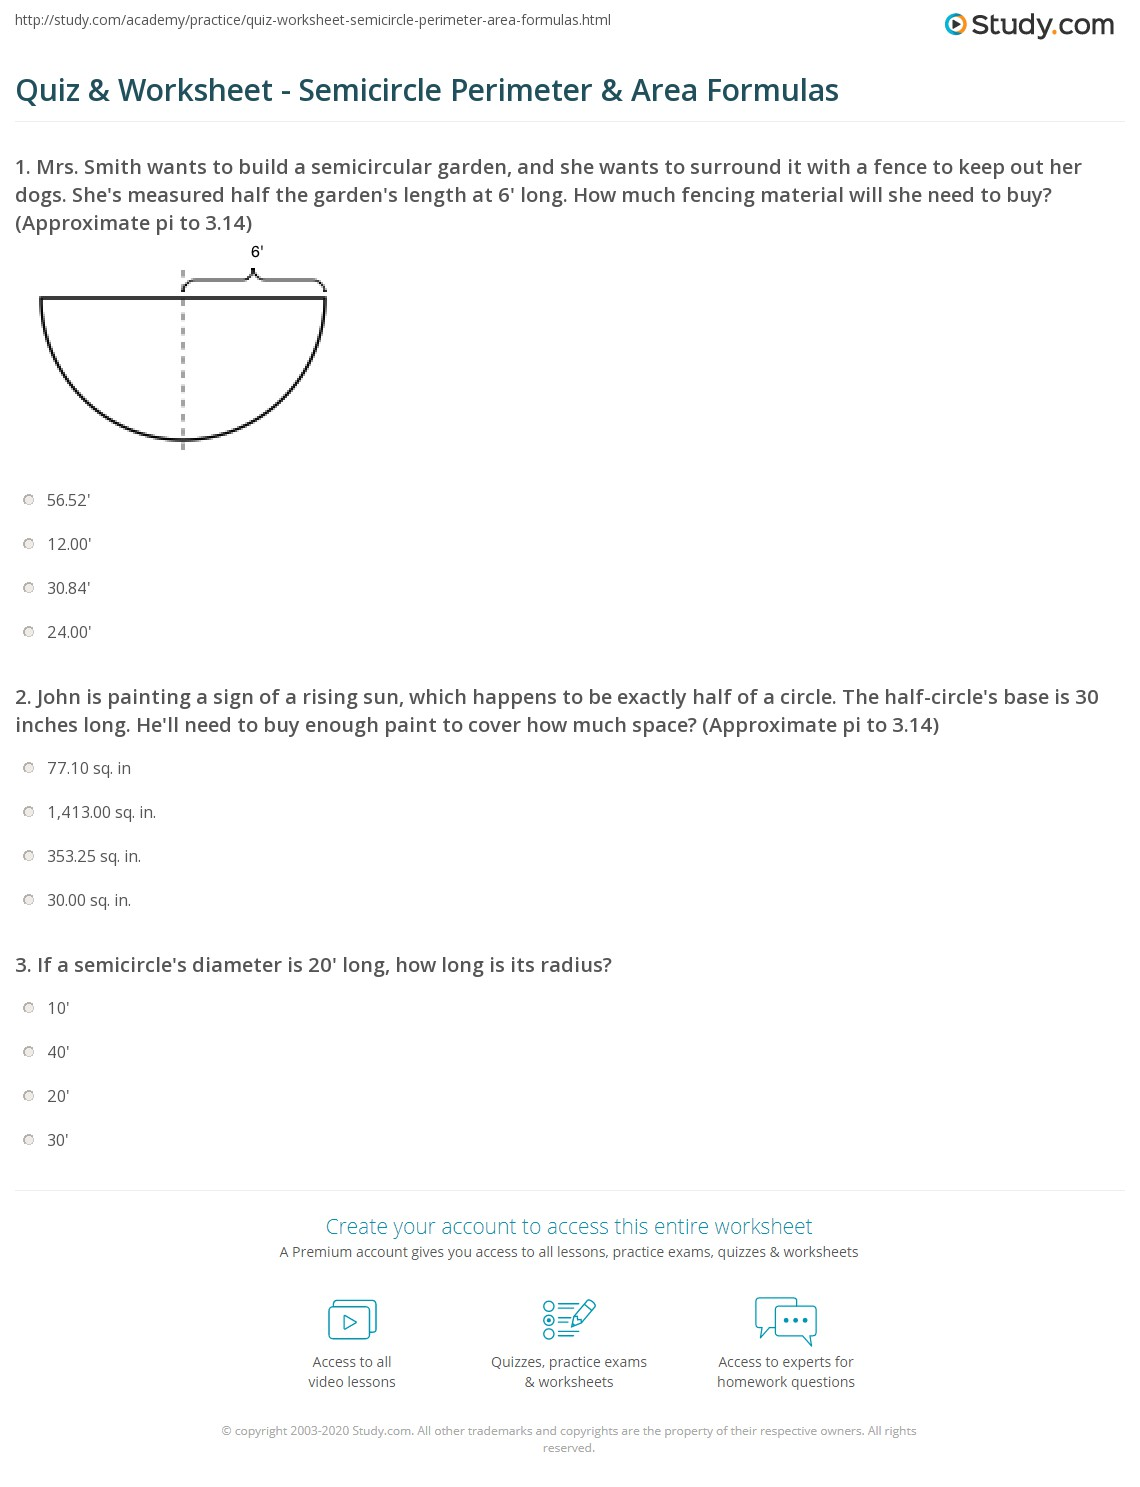 worksheet Circumference Of Circle Worksheet quiz worksheet semicircle perimeter area formulas study com john is painting a sign of rising sun which happens to be exactly half circle the circles base 30 inch